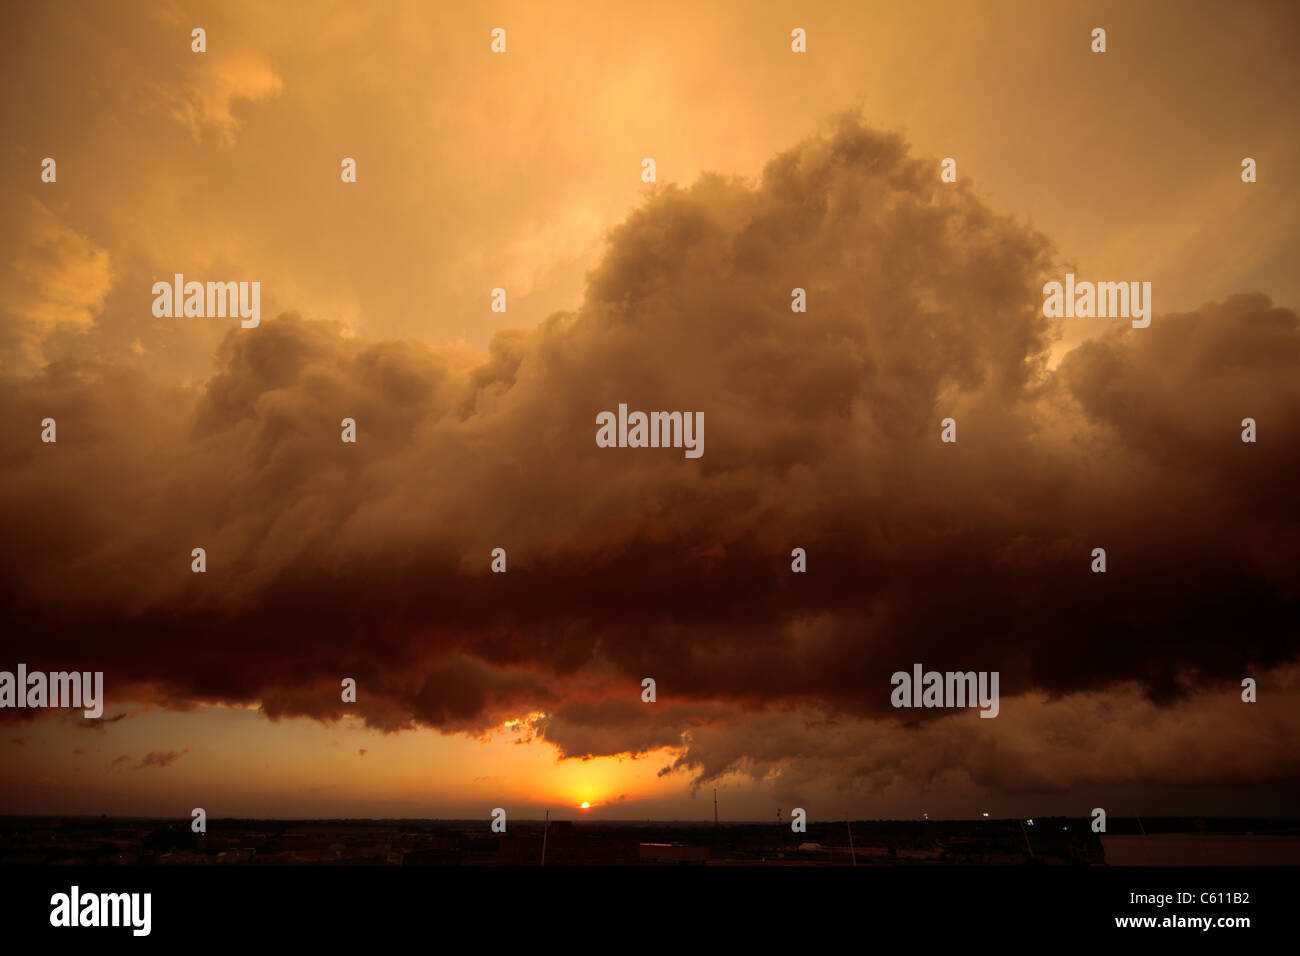 Detail of the setting sun illuminating the underside of a squall line. Stock Photo